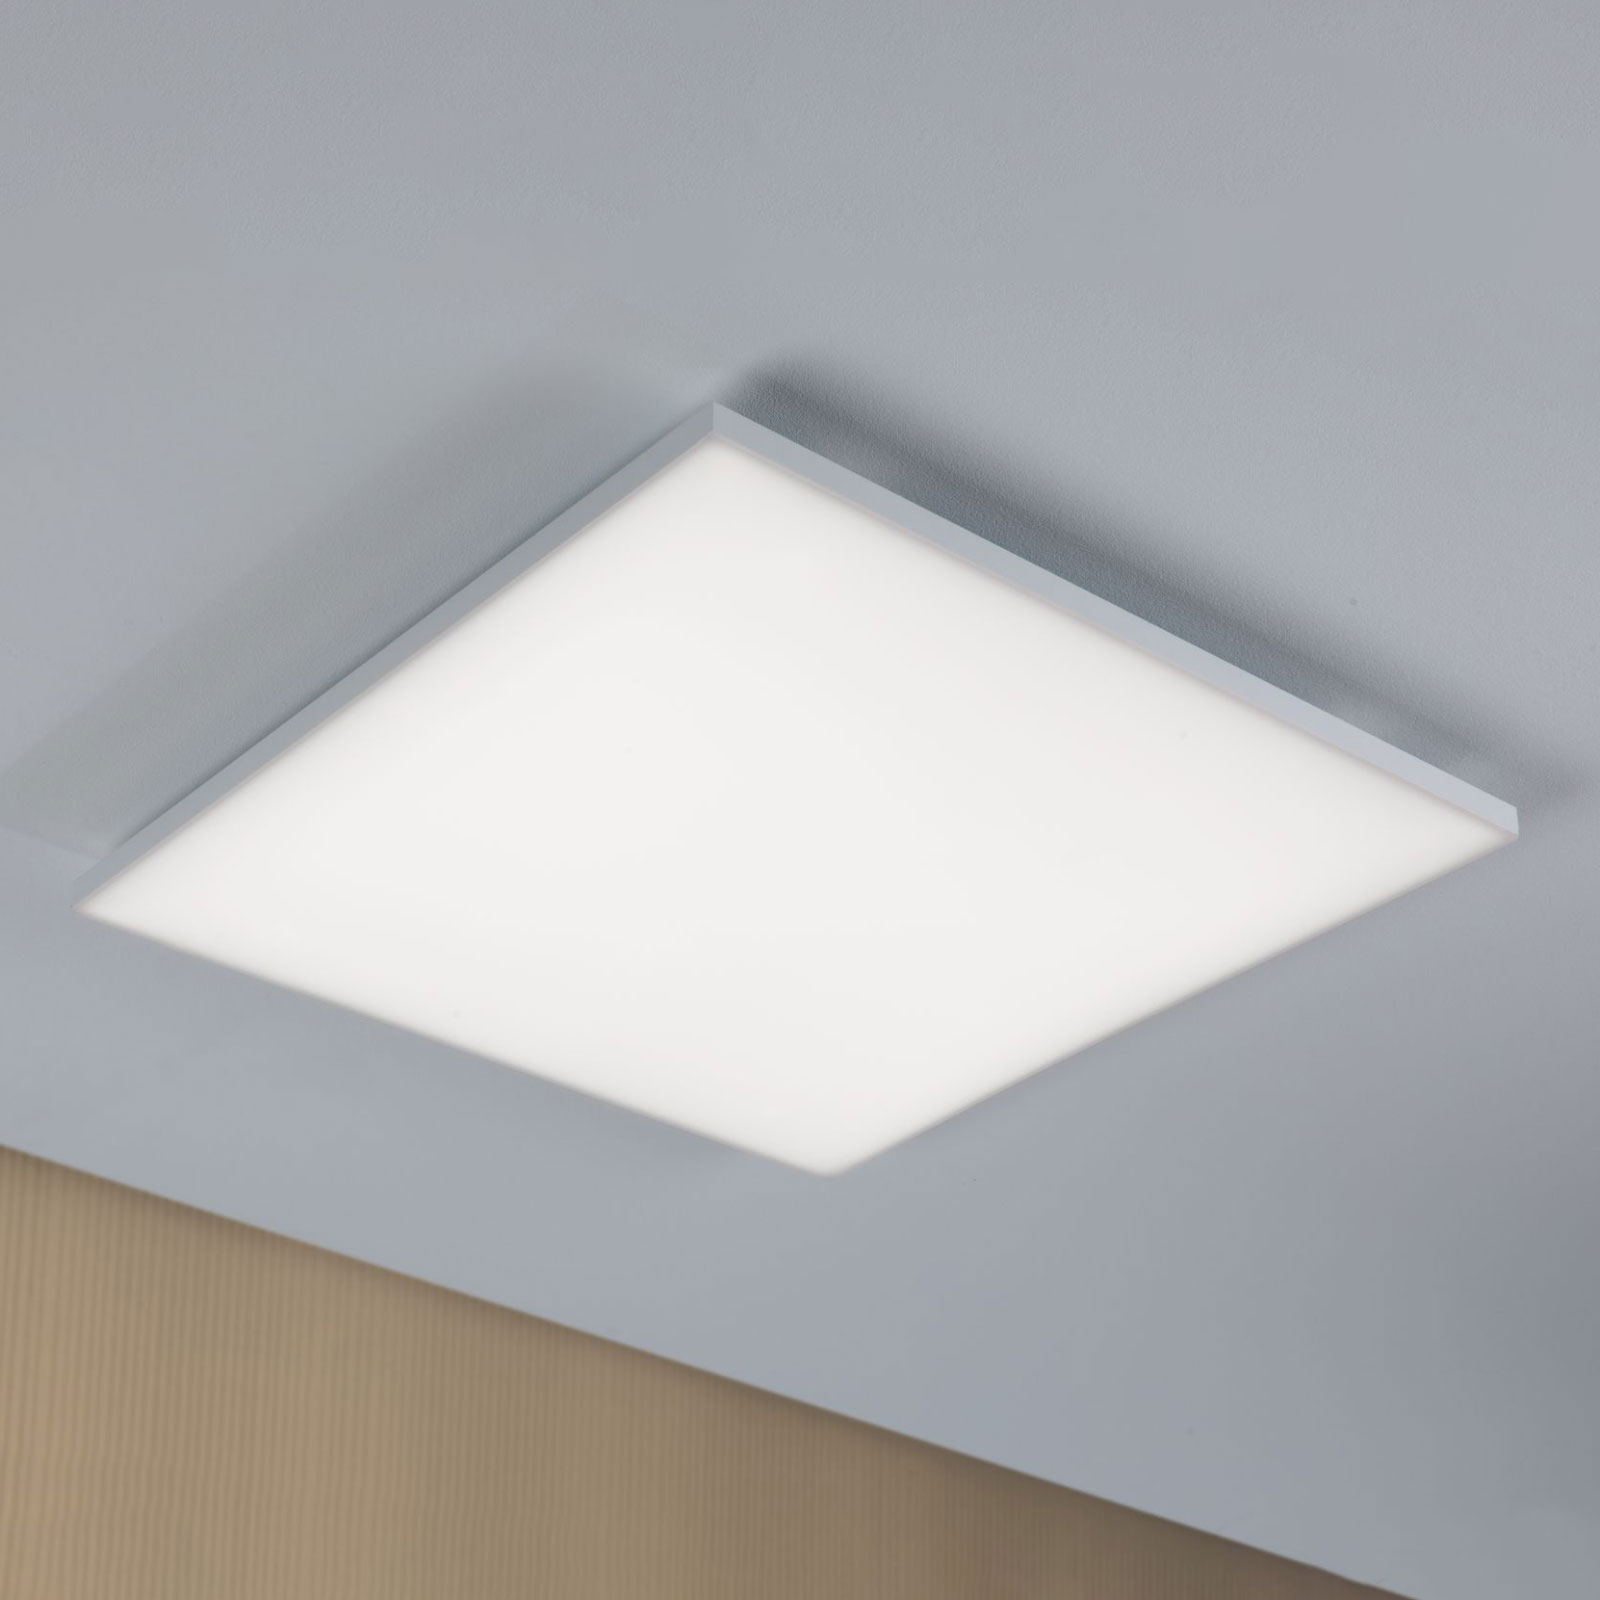 Paulmann Velora applique LED 59,5 x 59,5 cm